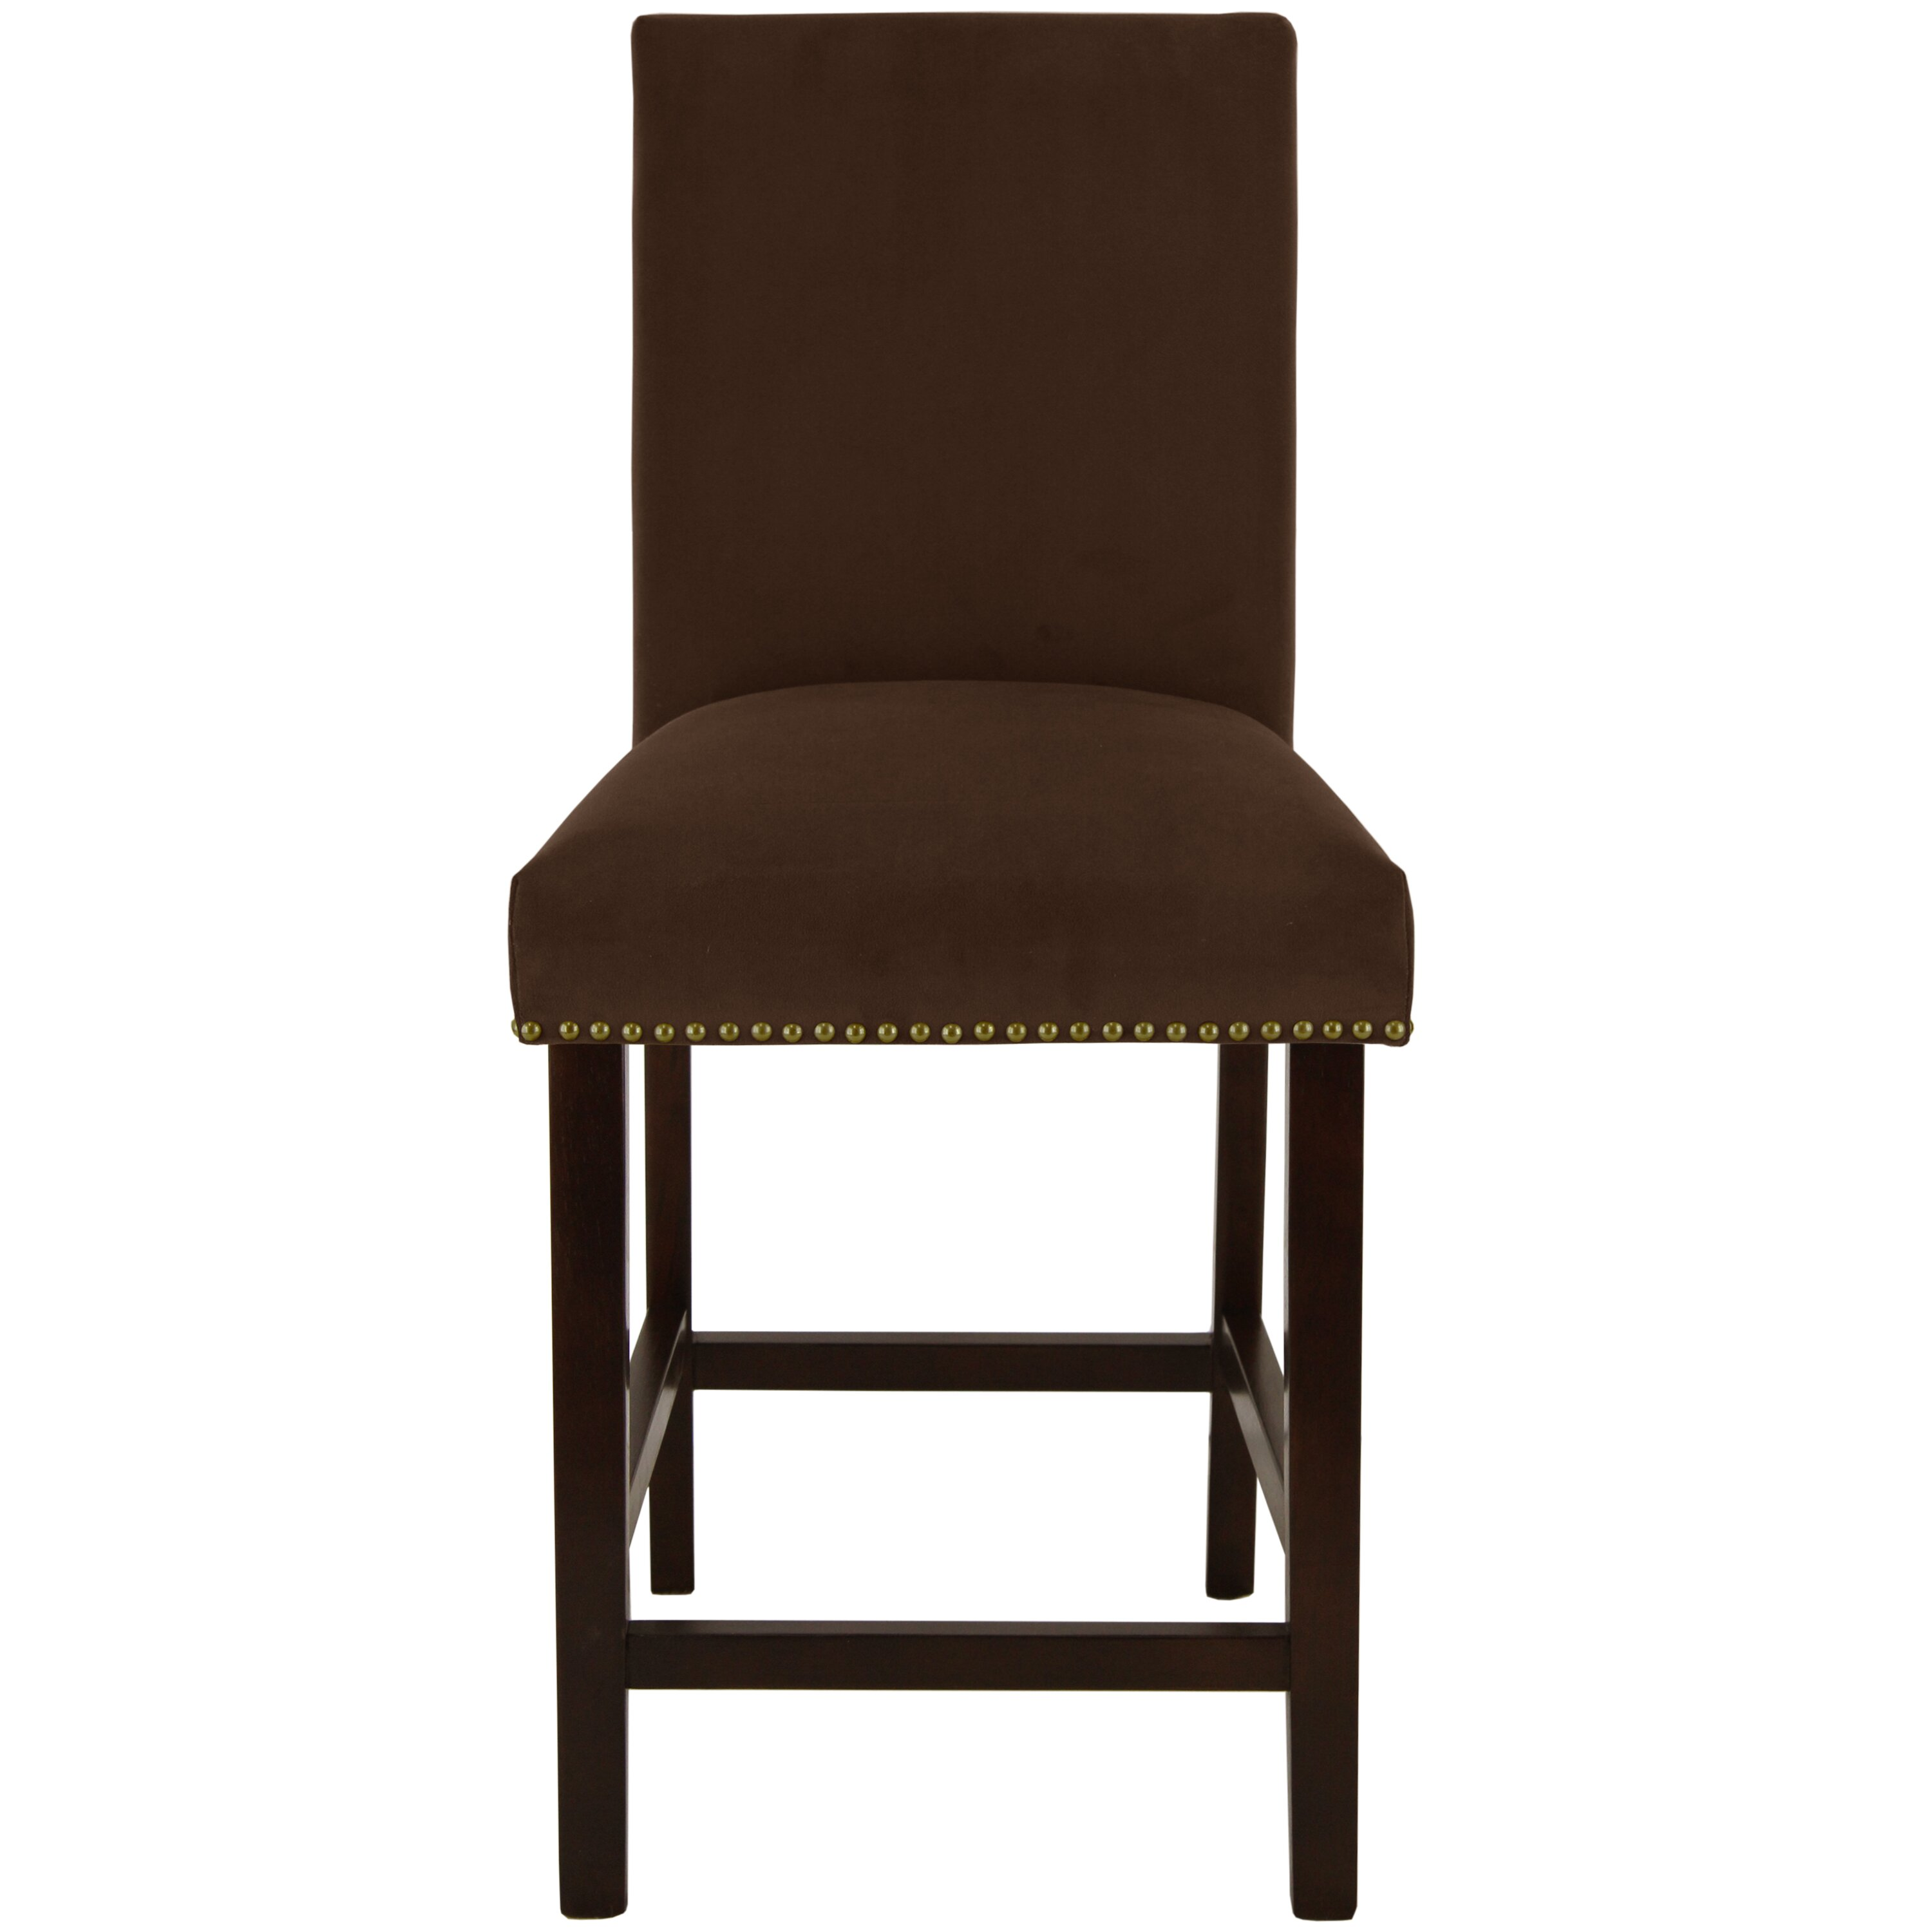 Darby Home Co Rochester 25quot Bar Stool amp Reviews Wayfair : Darby Home Co Rochester 25 Bar Stool DBHC7974 from www.wayfair.com size 3000 x 3000 jpeg 404kB